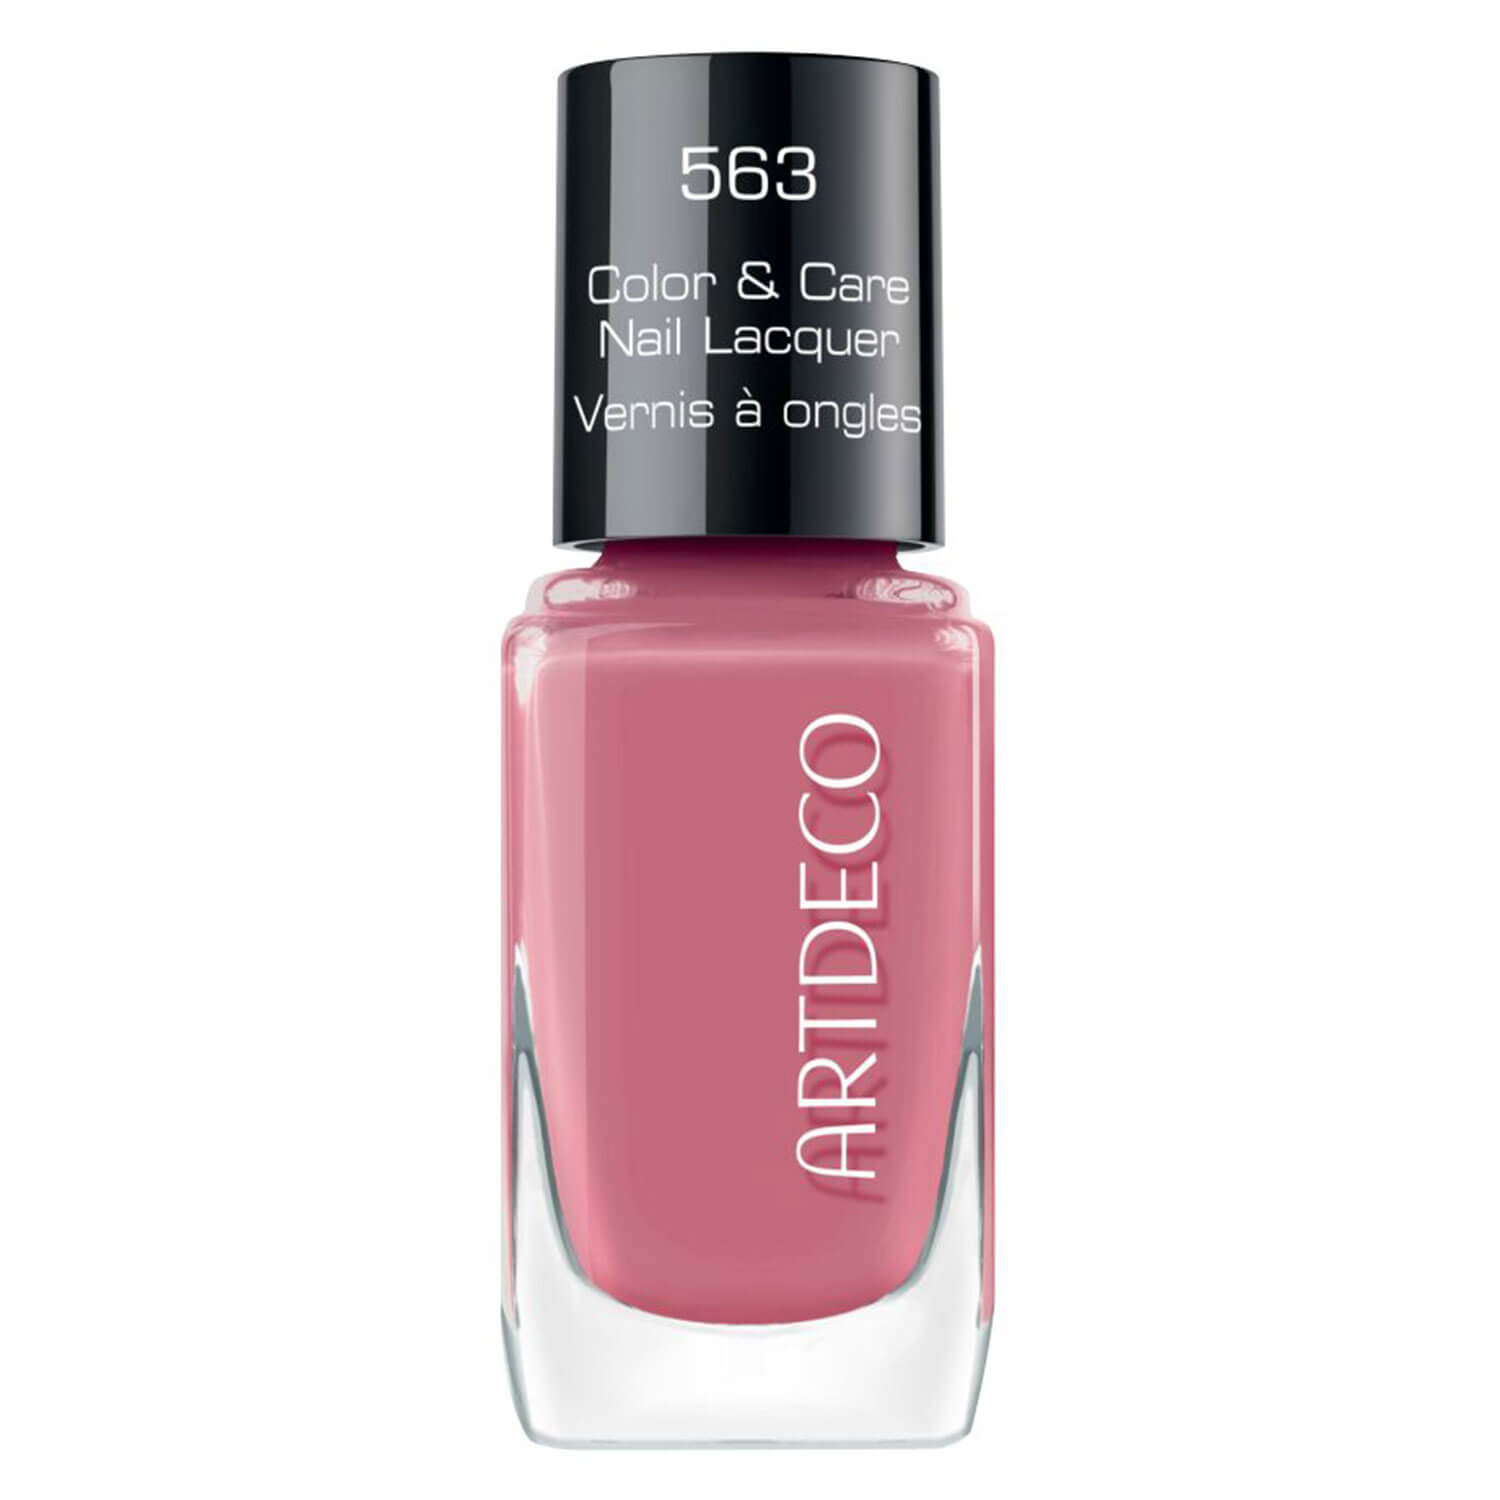 Color & Care - Nail Lacquer Orchid 563